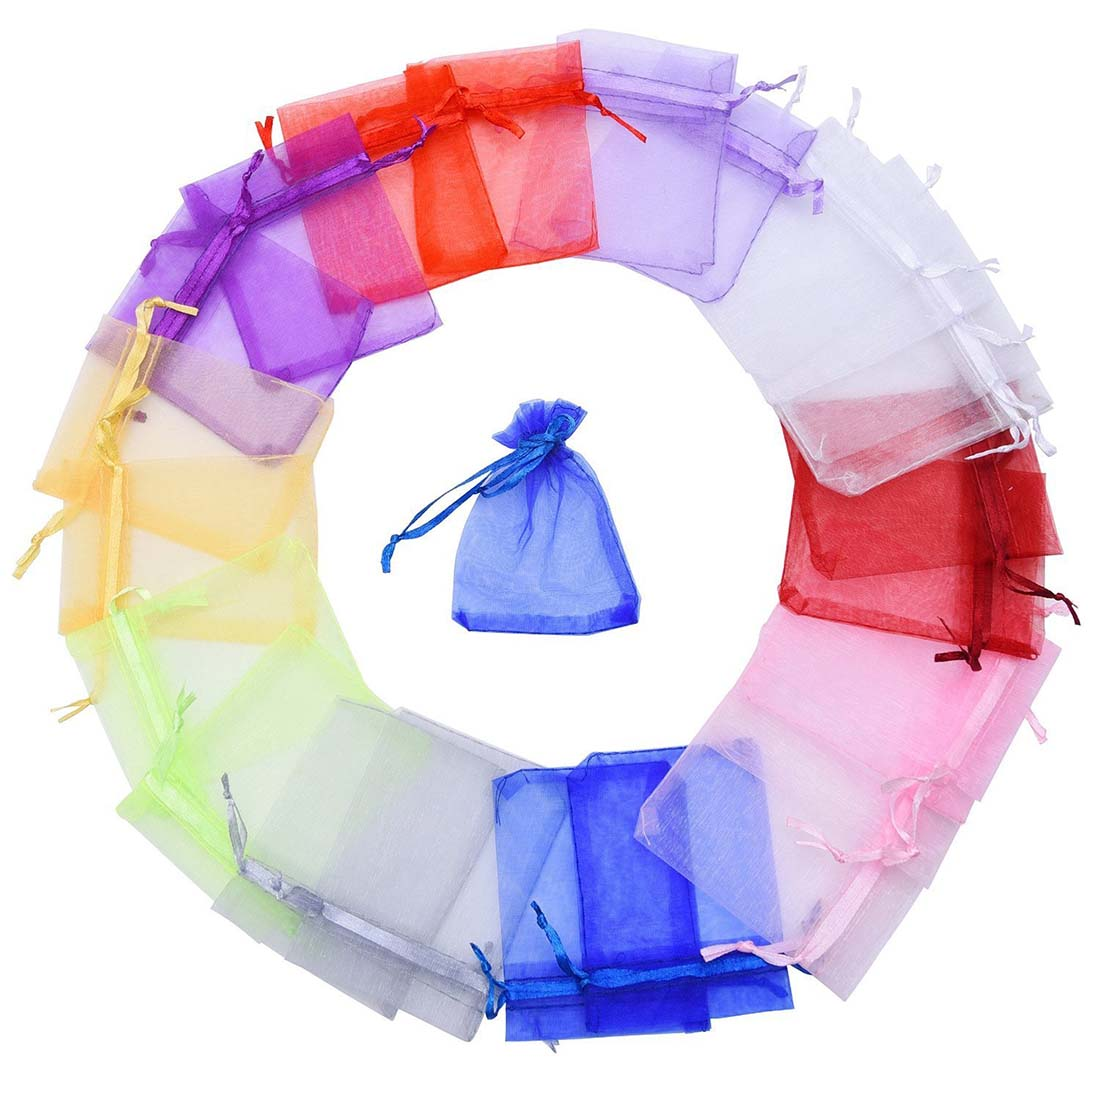 1Set(50Pcs) Wedding Party Favor Satin Drawstring Organza Bags/Pouch-Assorted 8*10cm